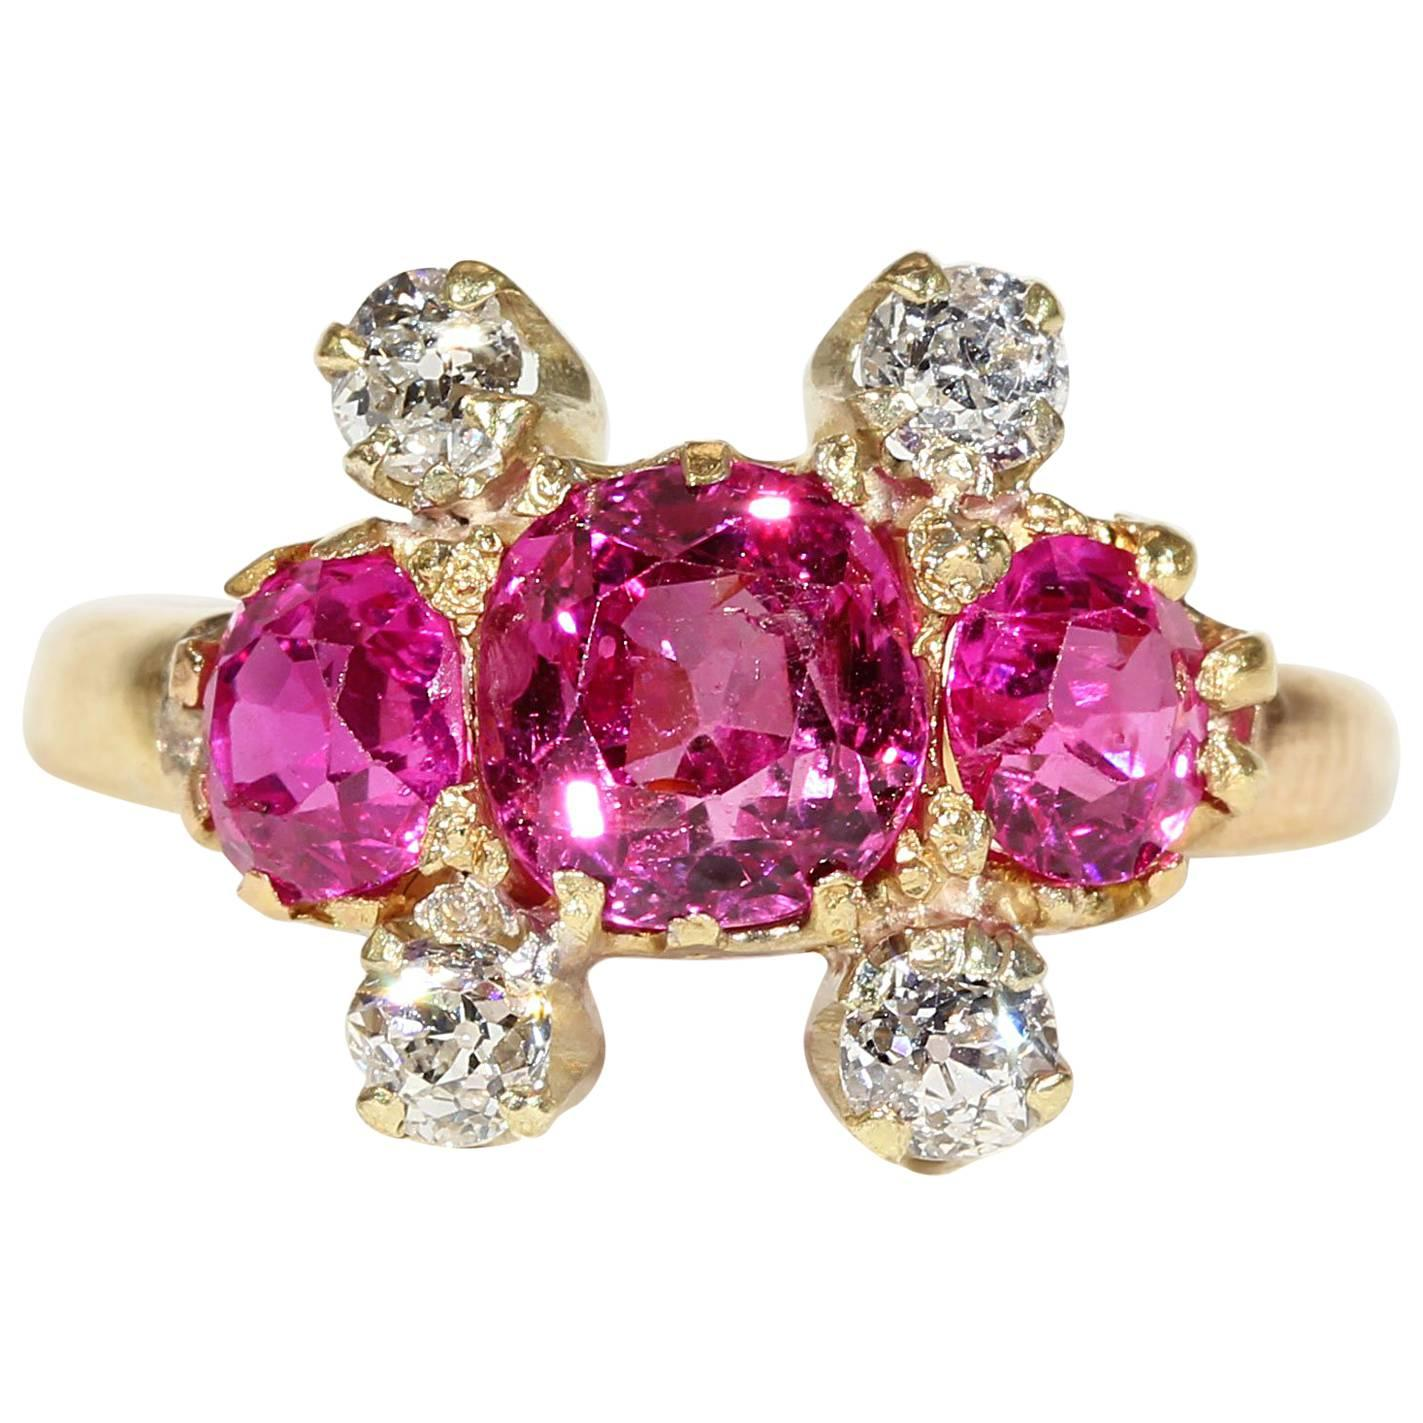 Late Victorian Ruby, Diamond and Emerald Gypsy Ring For Sale at 1stdibs